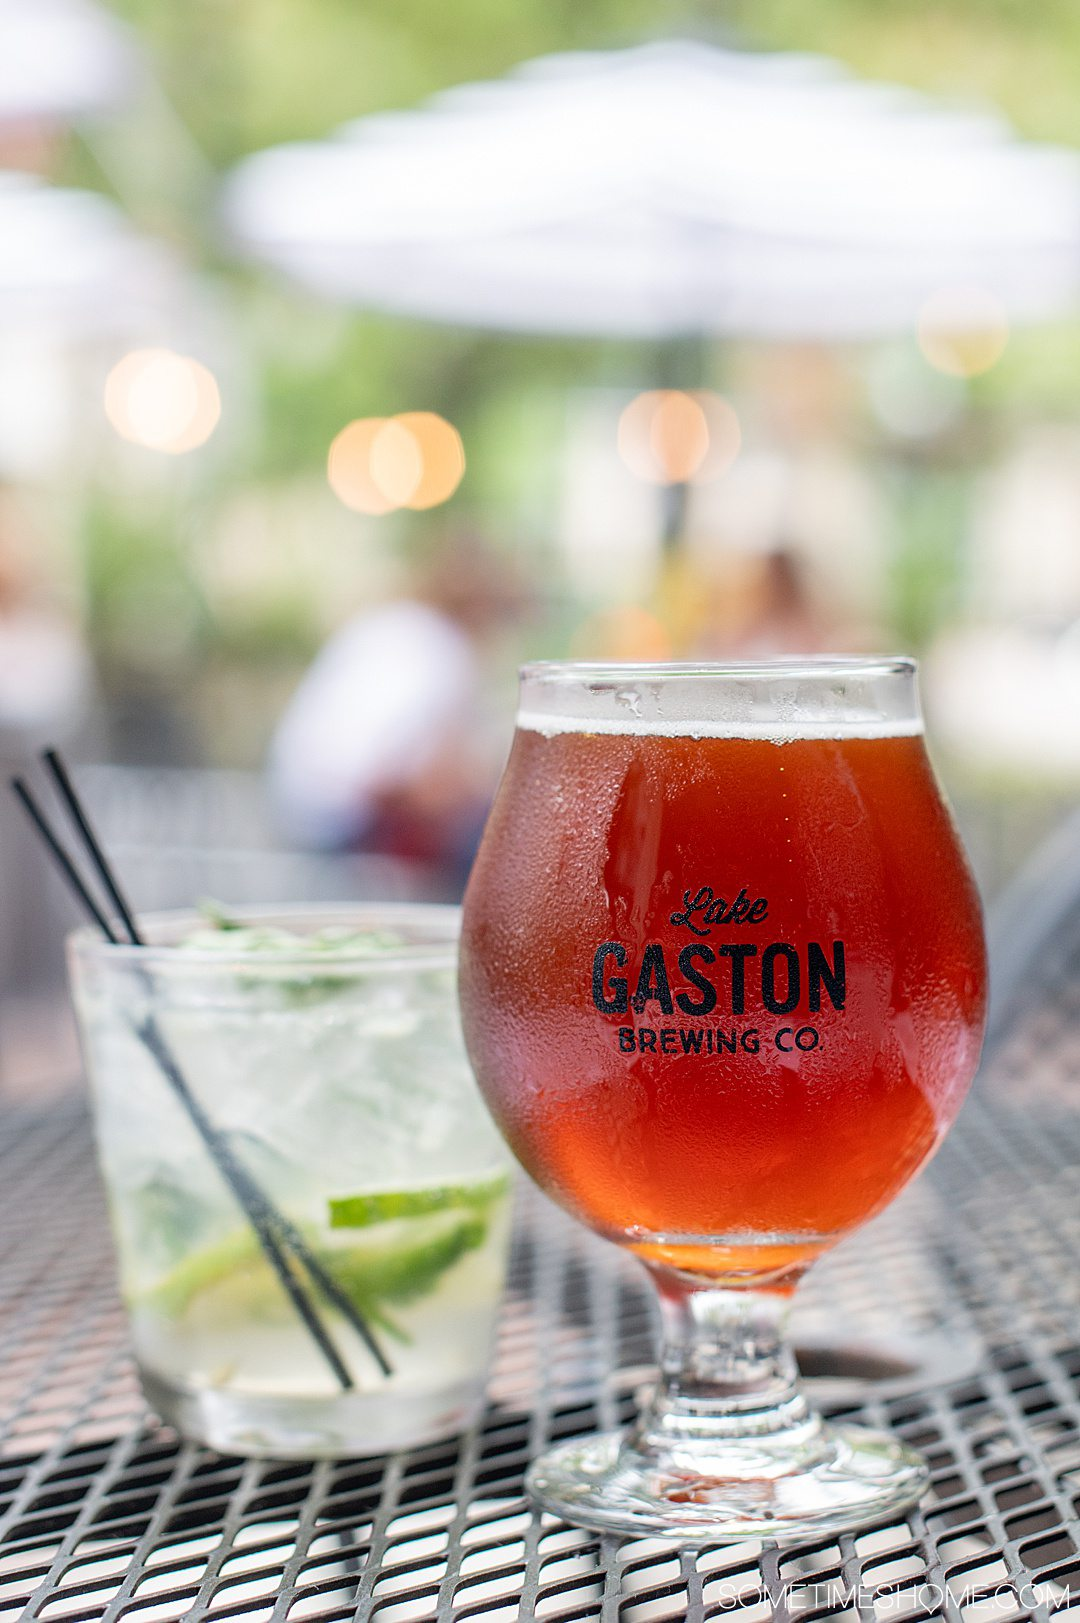 A cocktail and a beer at Gaston Brewing Co. in Fayetteville, NC